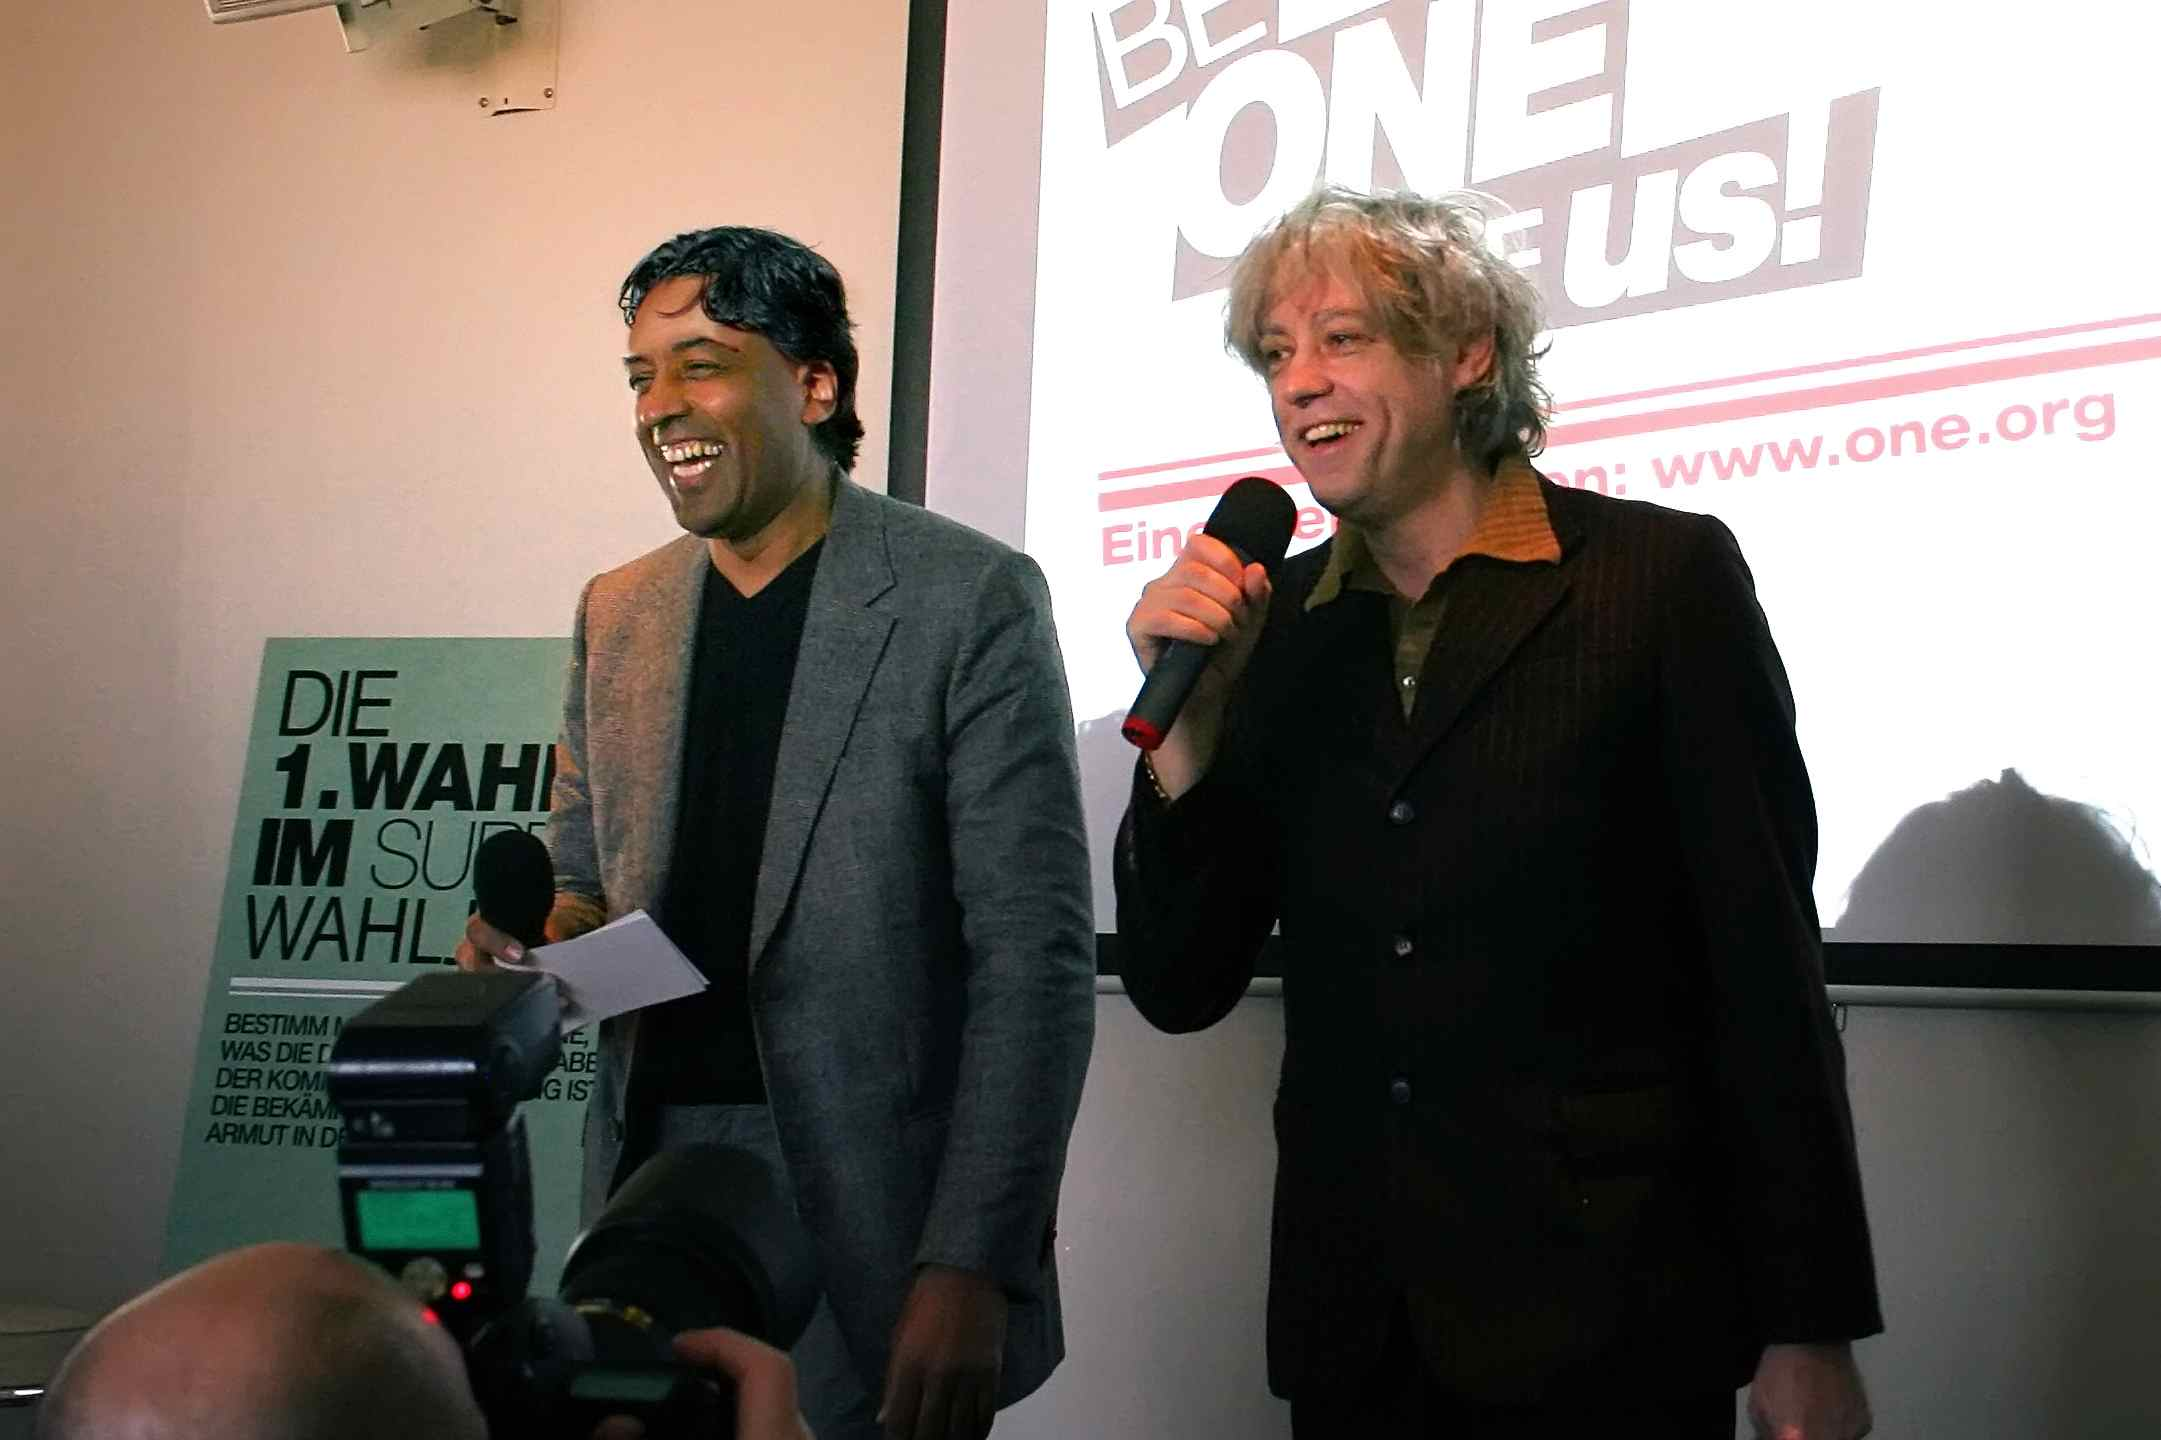 Campaigning with Bob Geldof for ONE.ORG